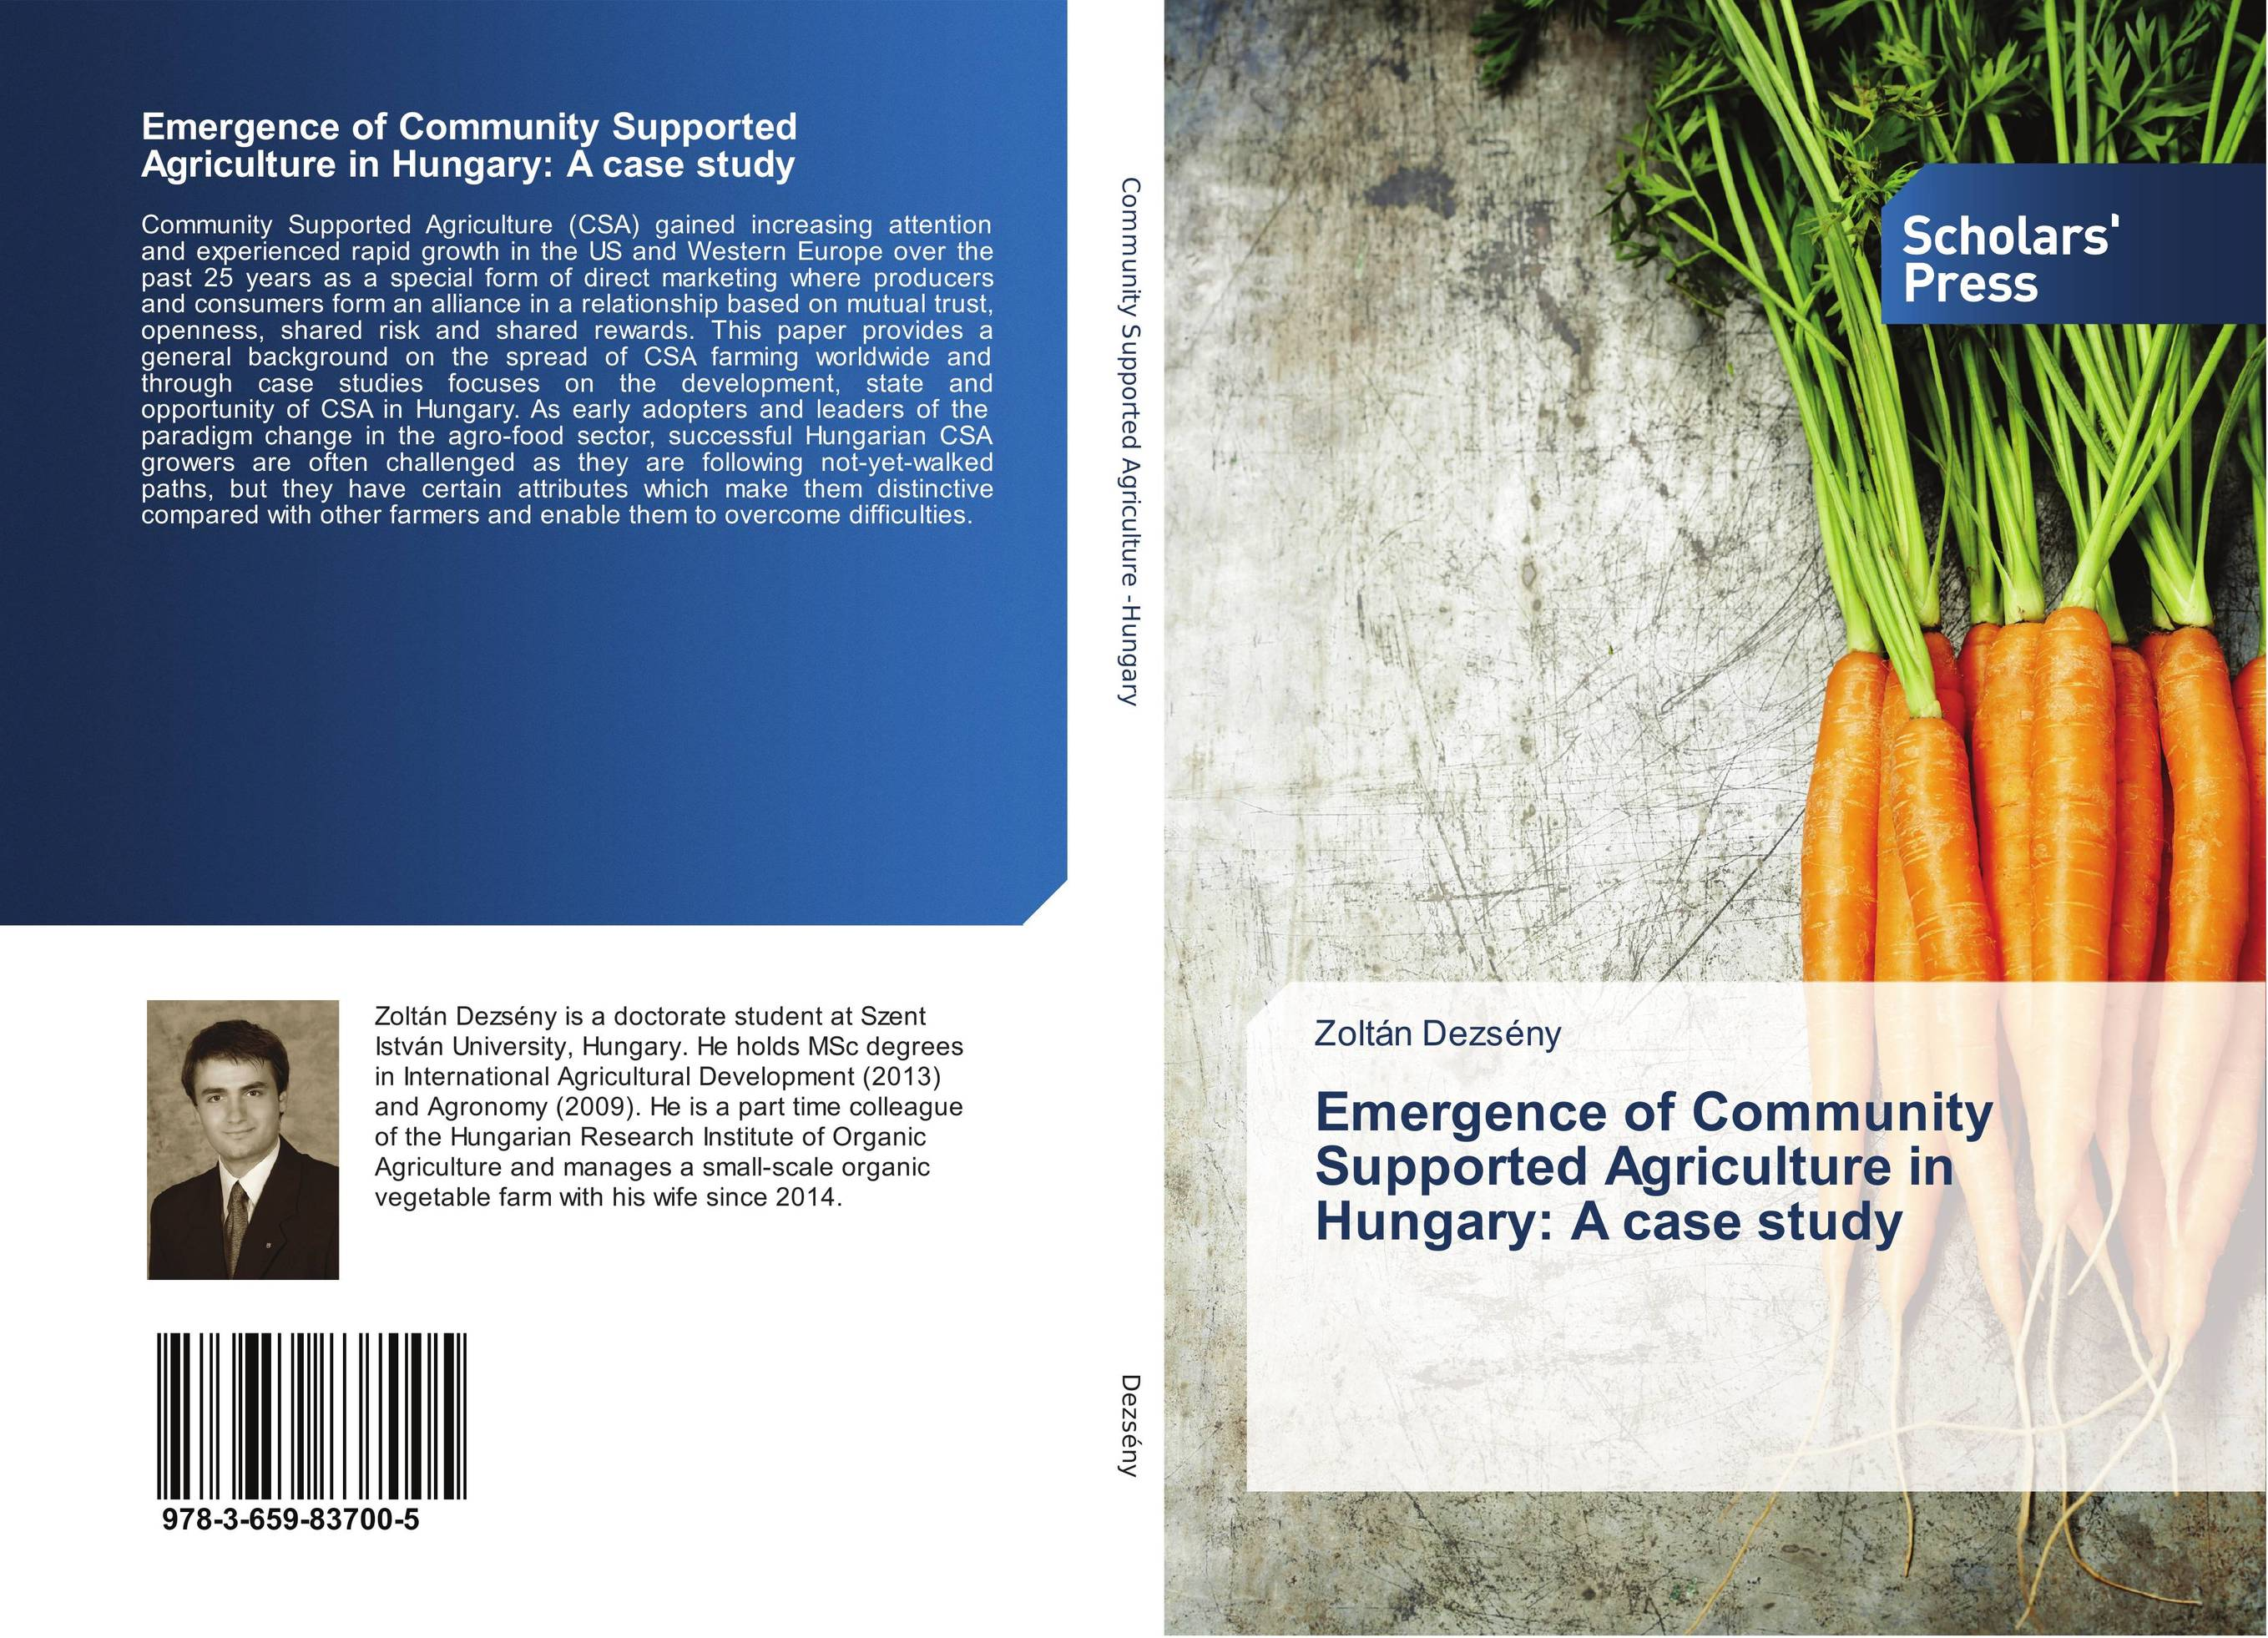 Emergence of Community Supported Agriculture in Hungary: A case study